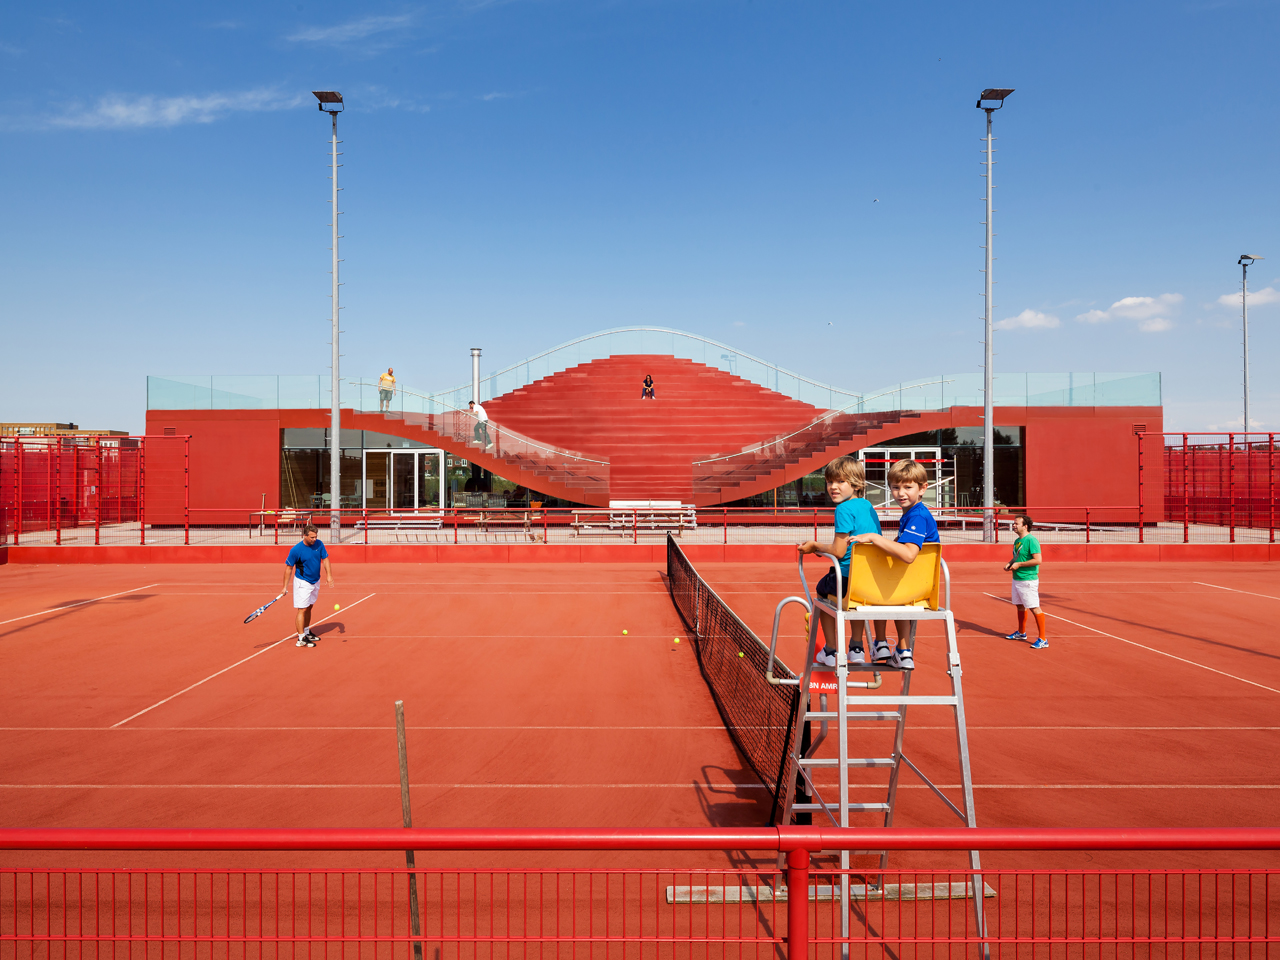 MVRDV completes The Couch, a club house for Amsterdam's Tennisclub IJburg